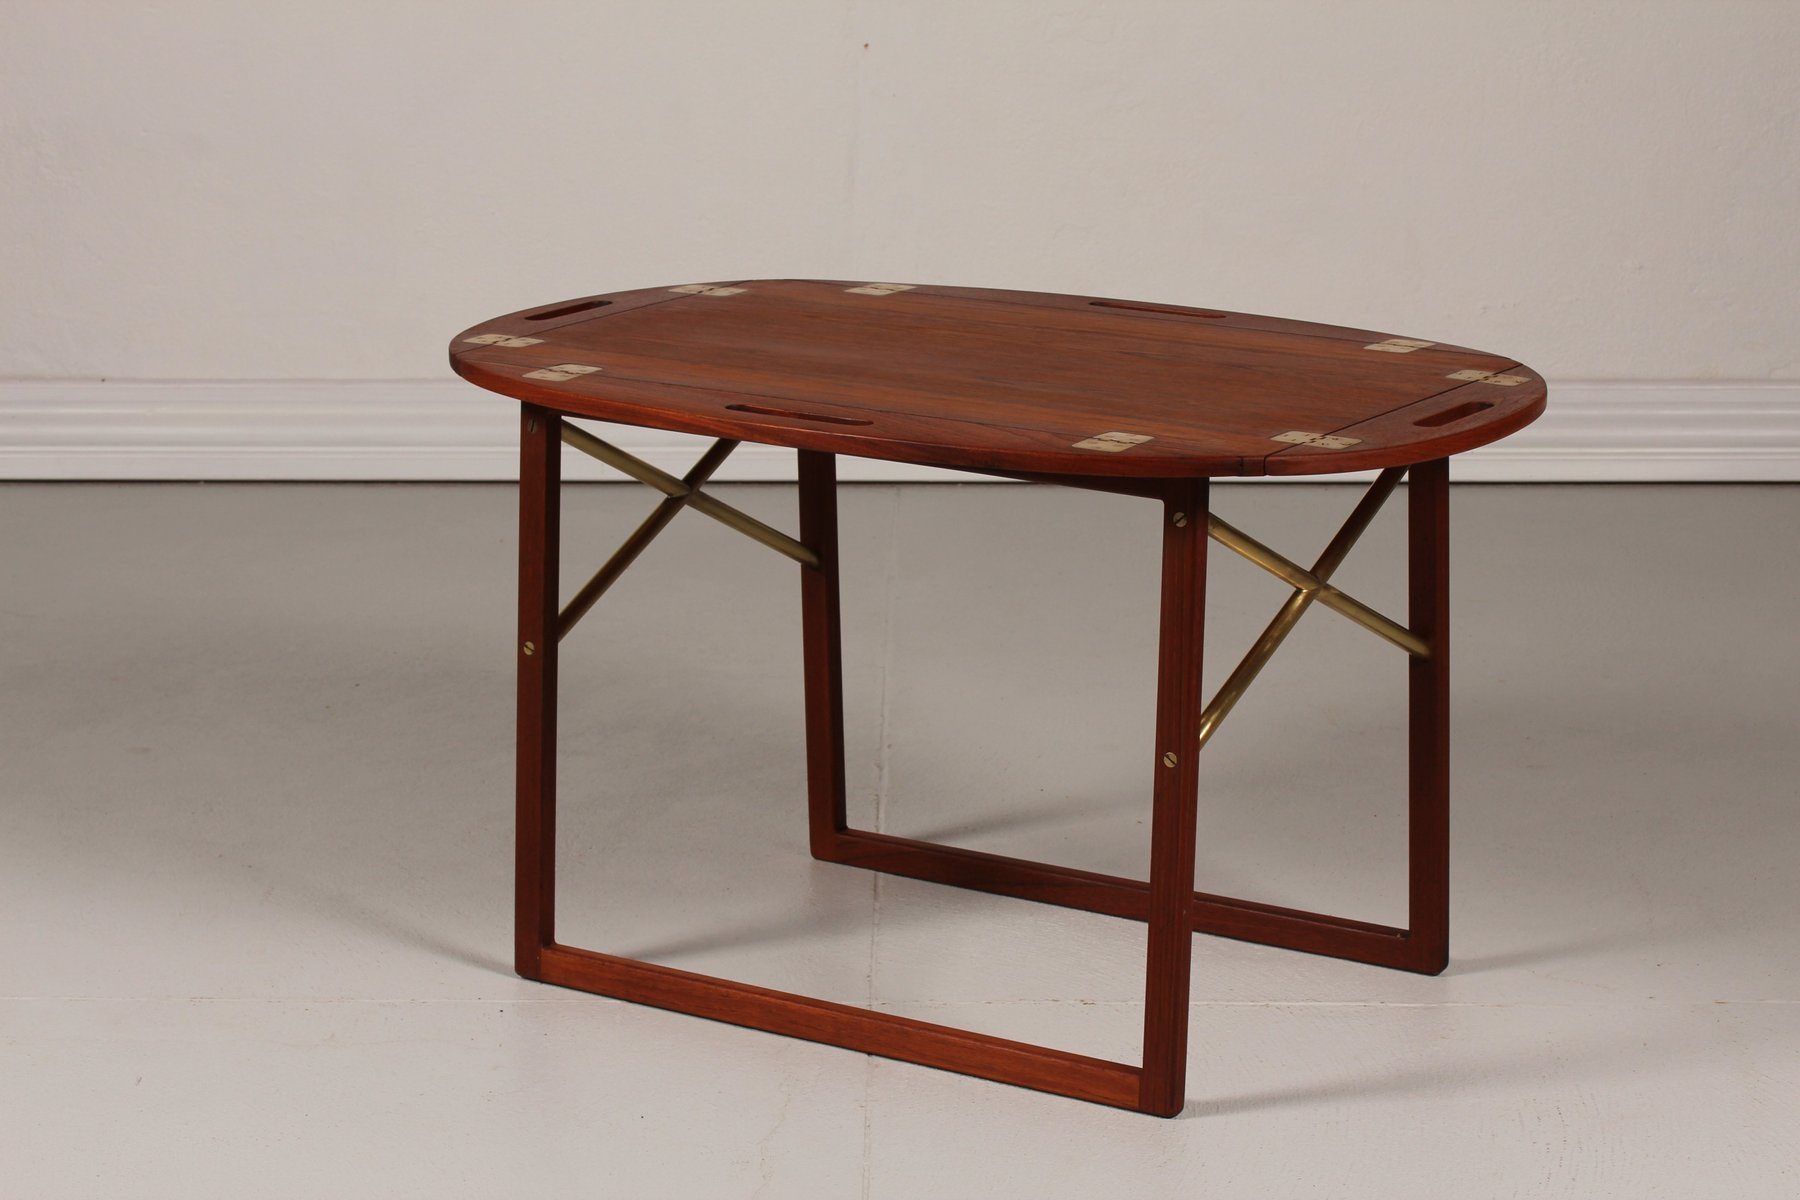 Teak Tray Coffee Table By Svend Langkilde For Illums Bolighus 1960s For Sale At Pamono